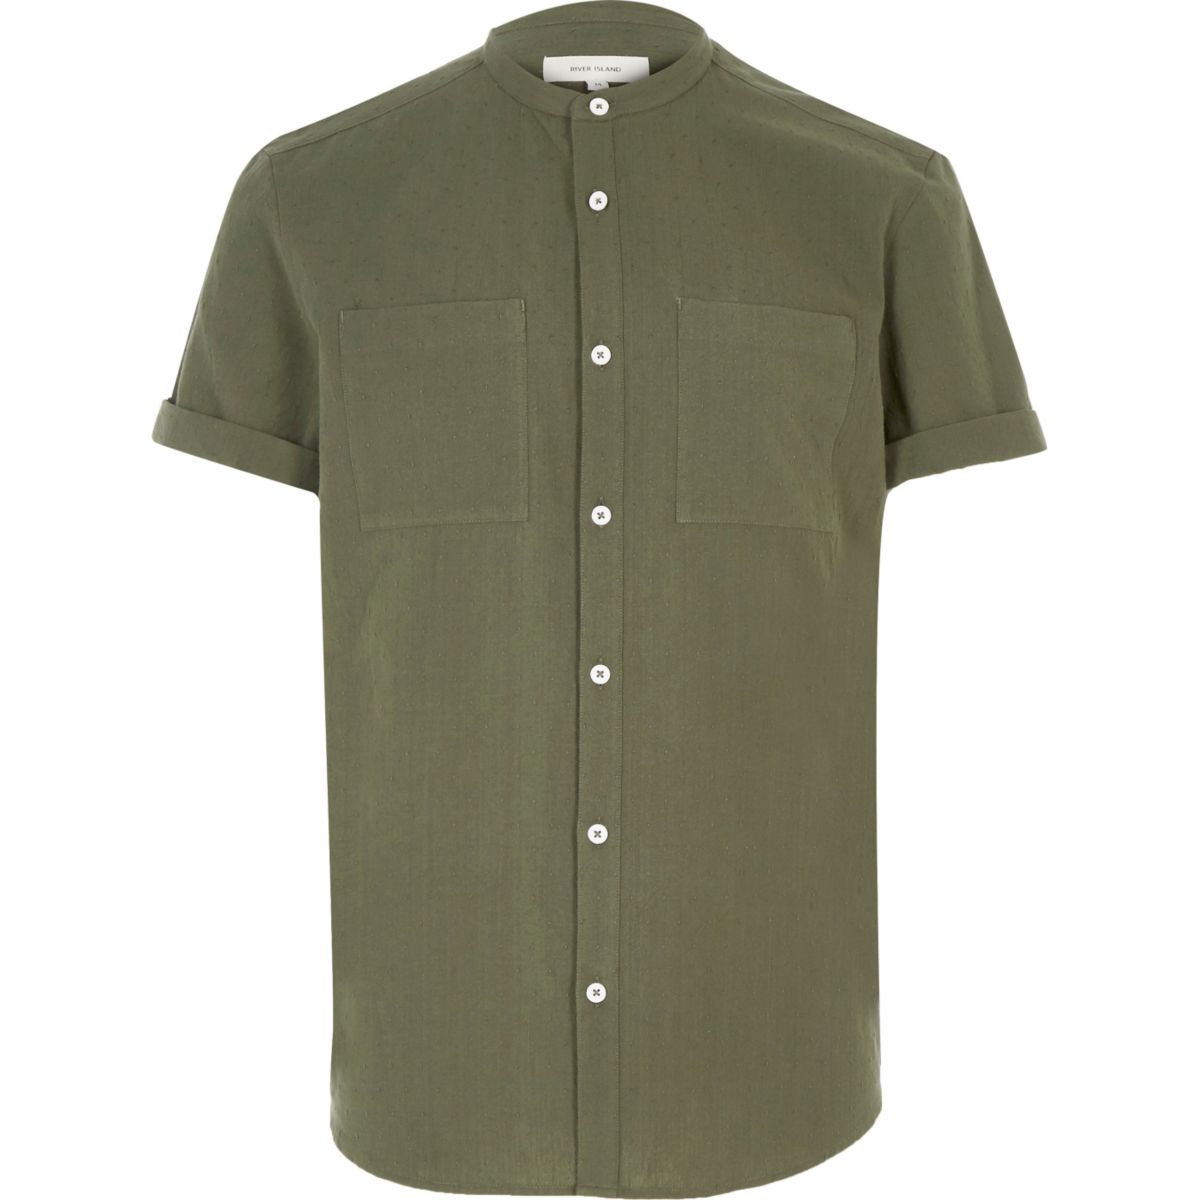 Green textured grandad shirt